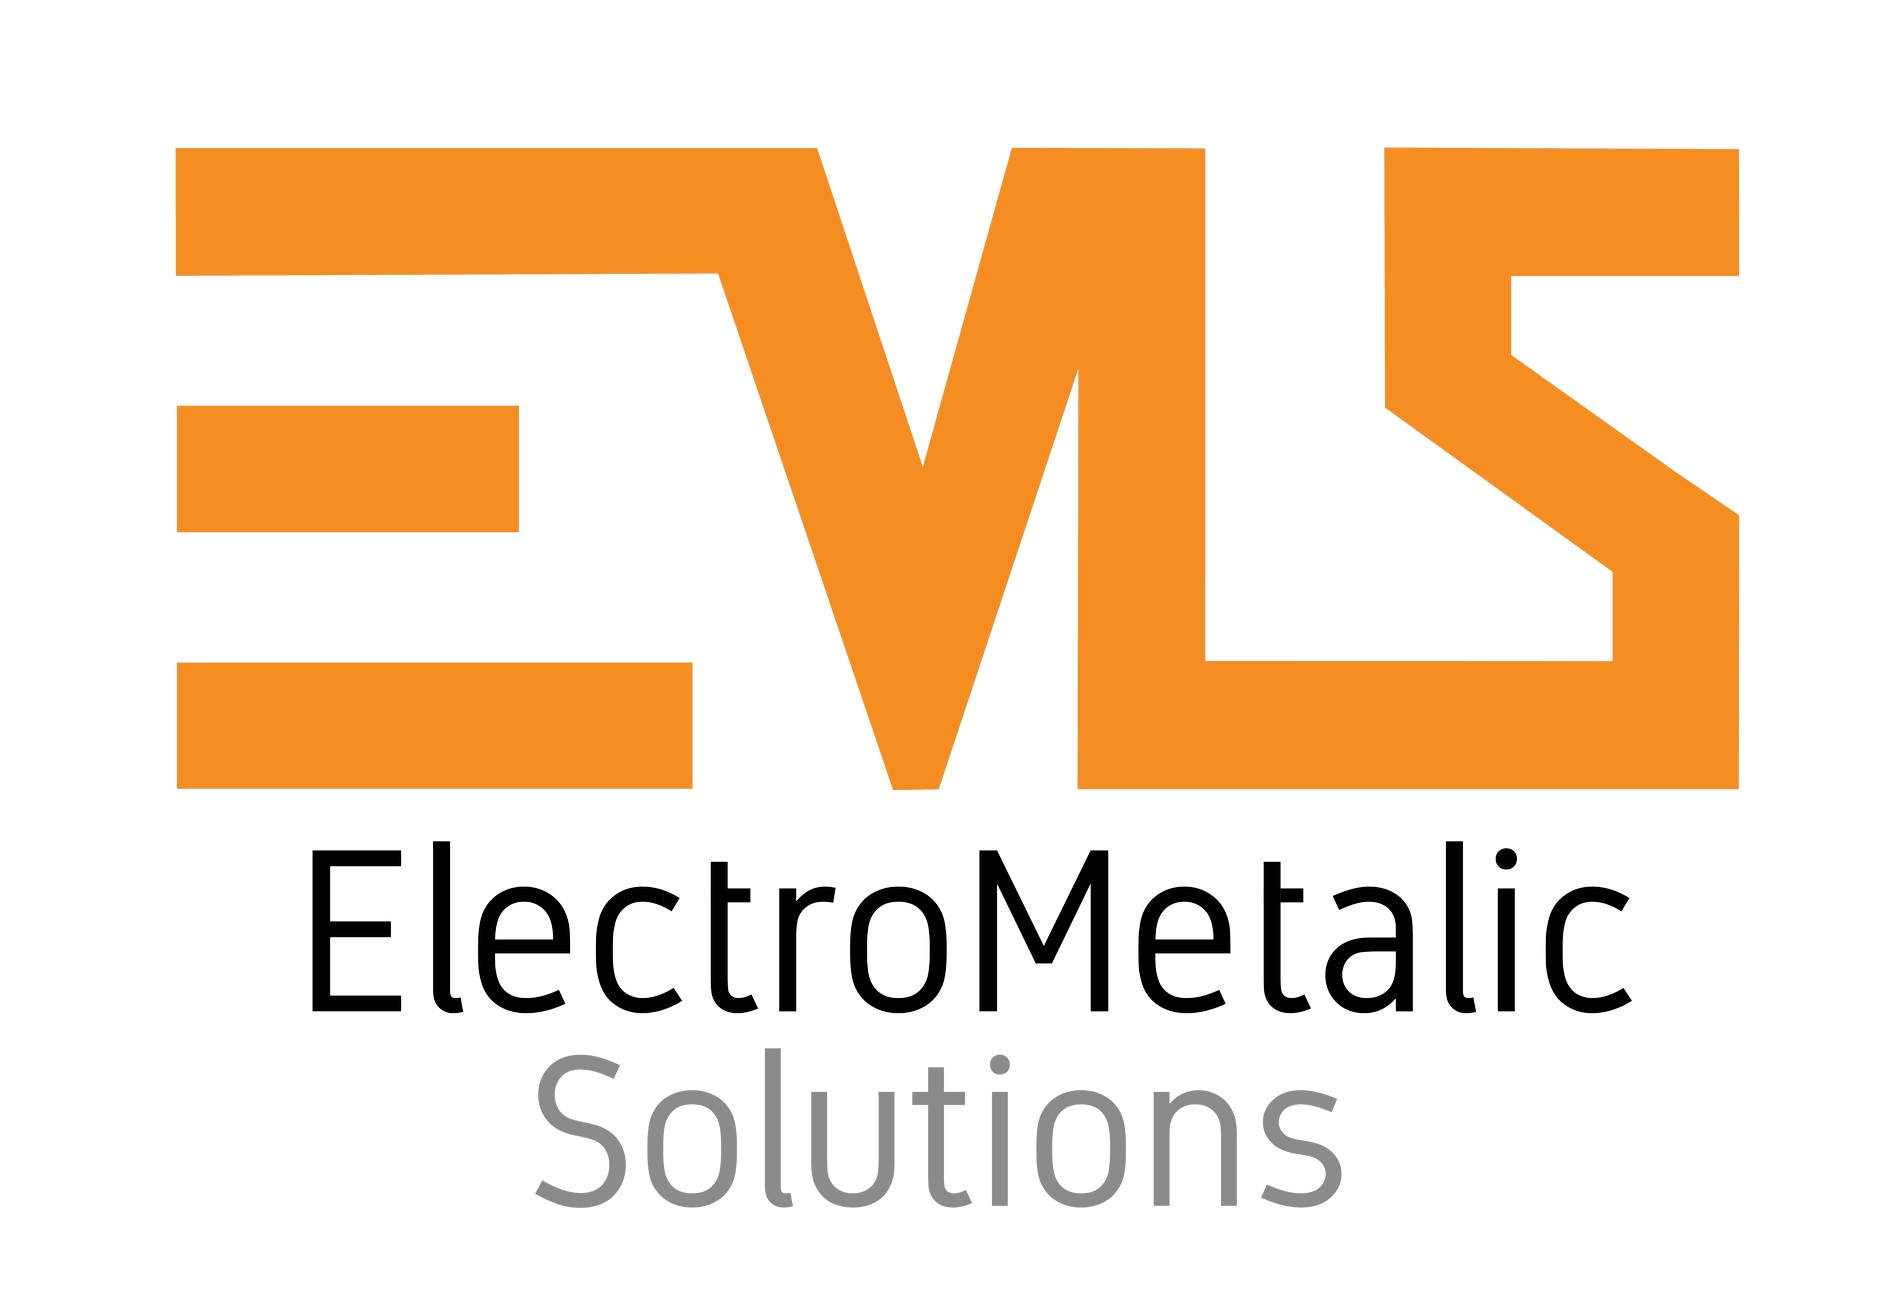 Electro Metalic Solutions